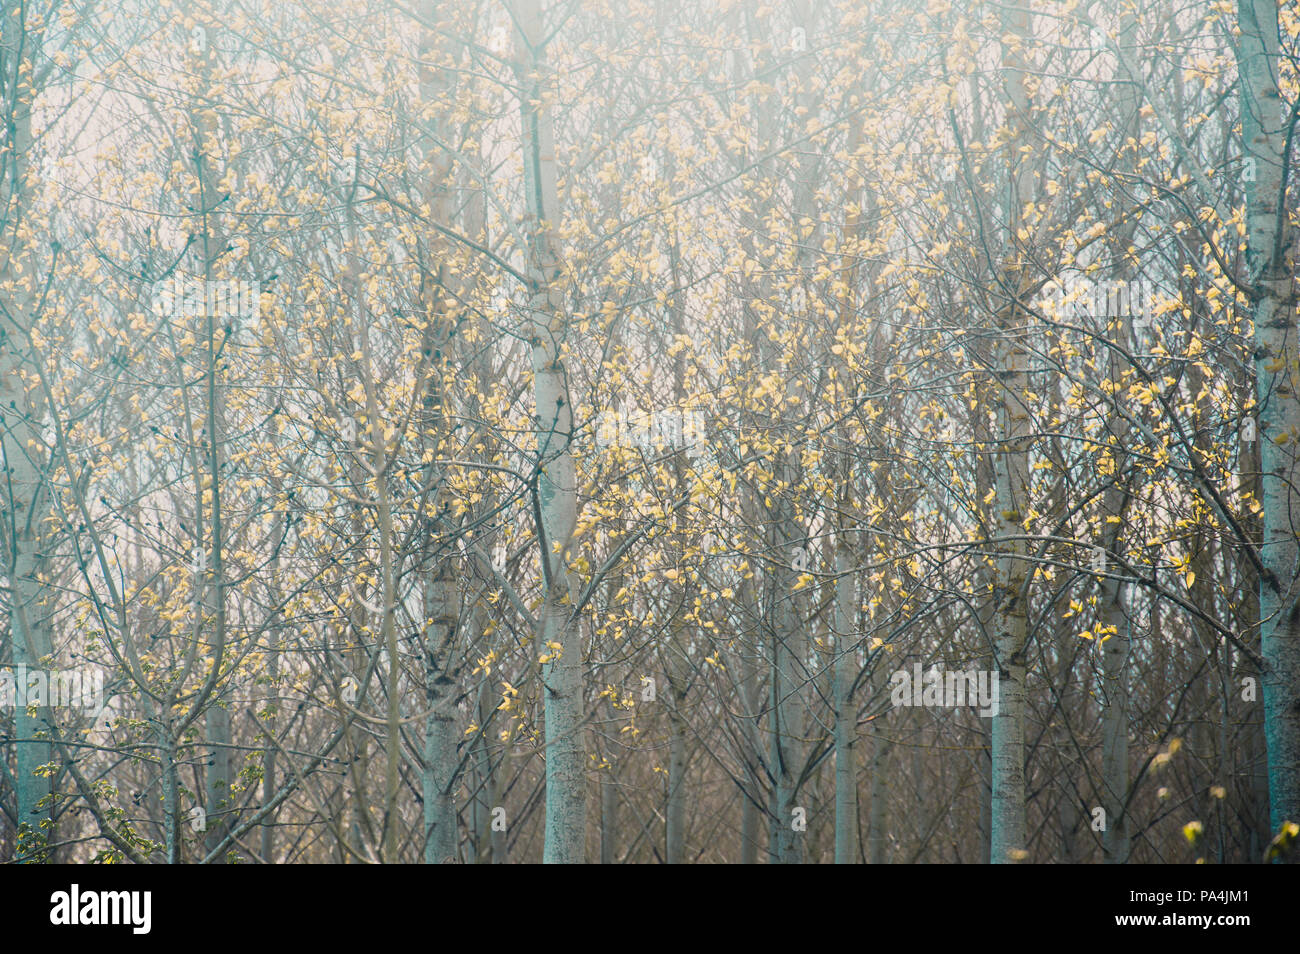 Early spring and light shines through birch trees. Edited with a muted Instagram look. - Stock Image